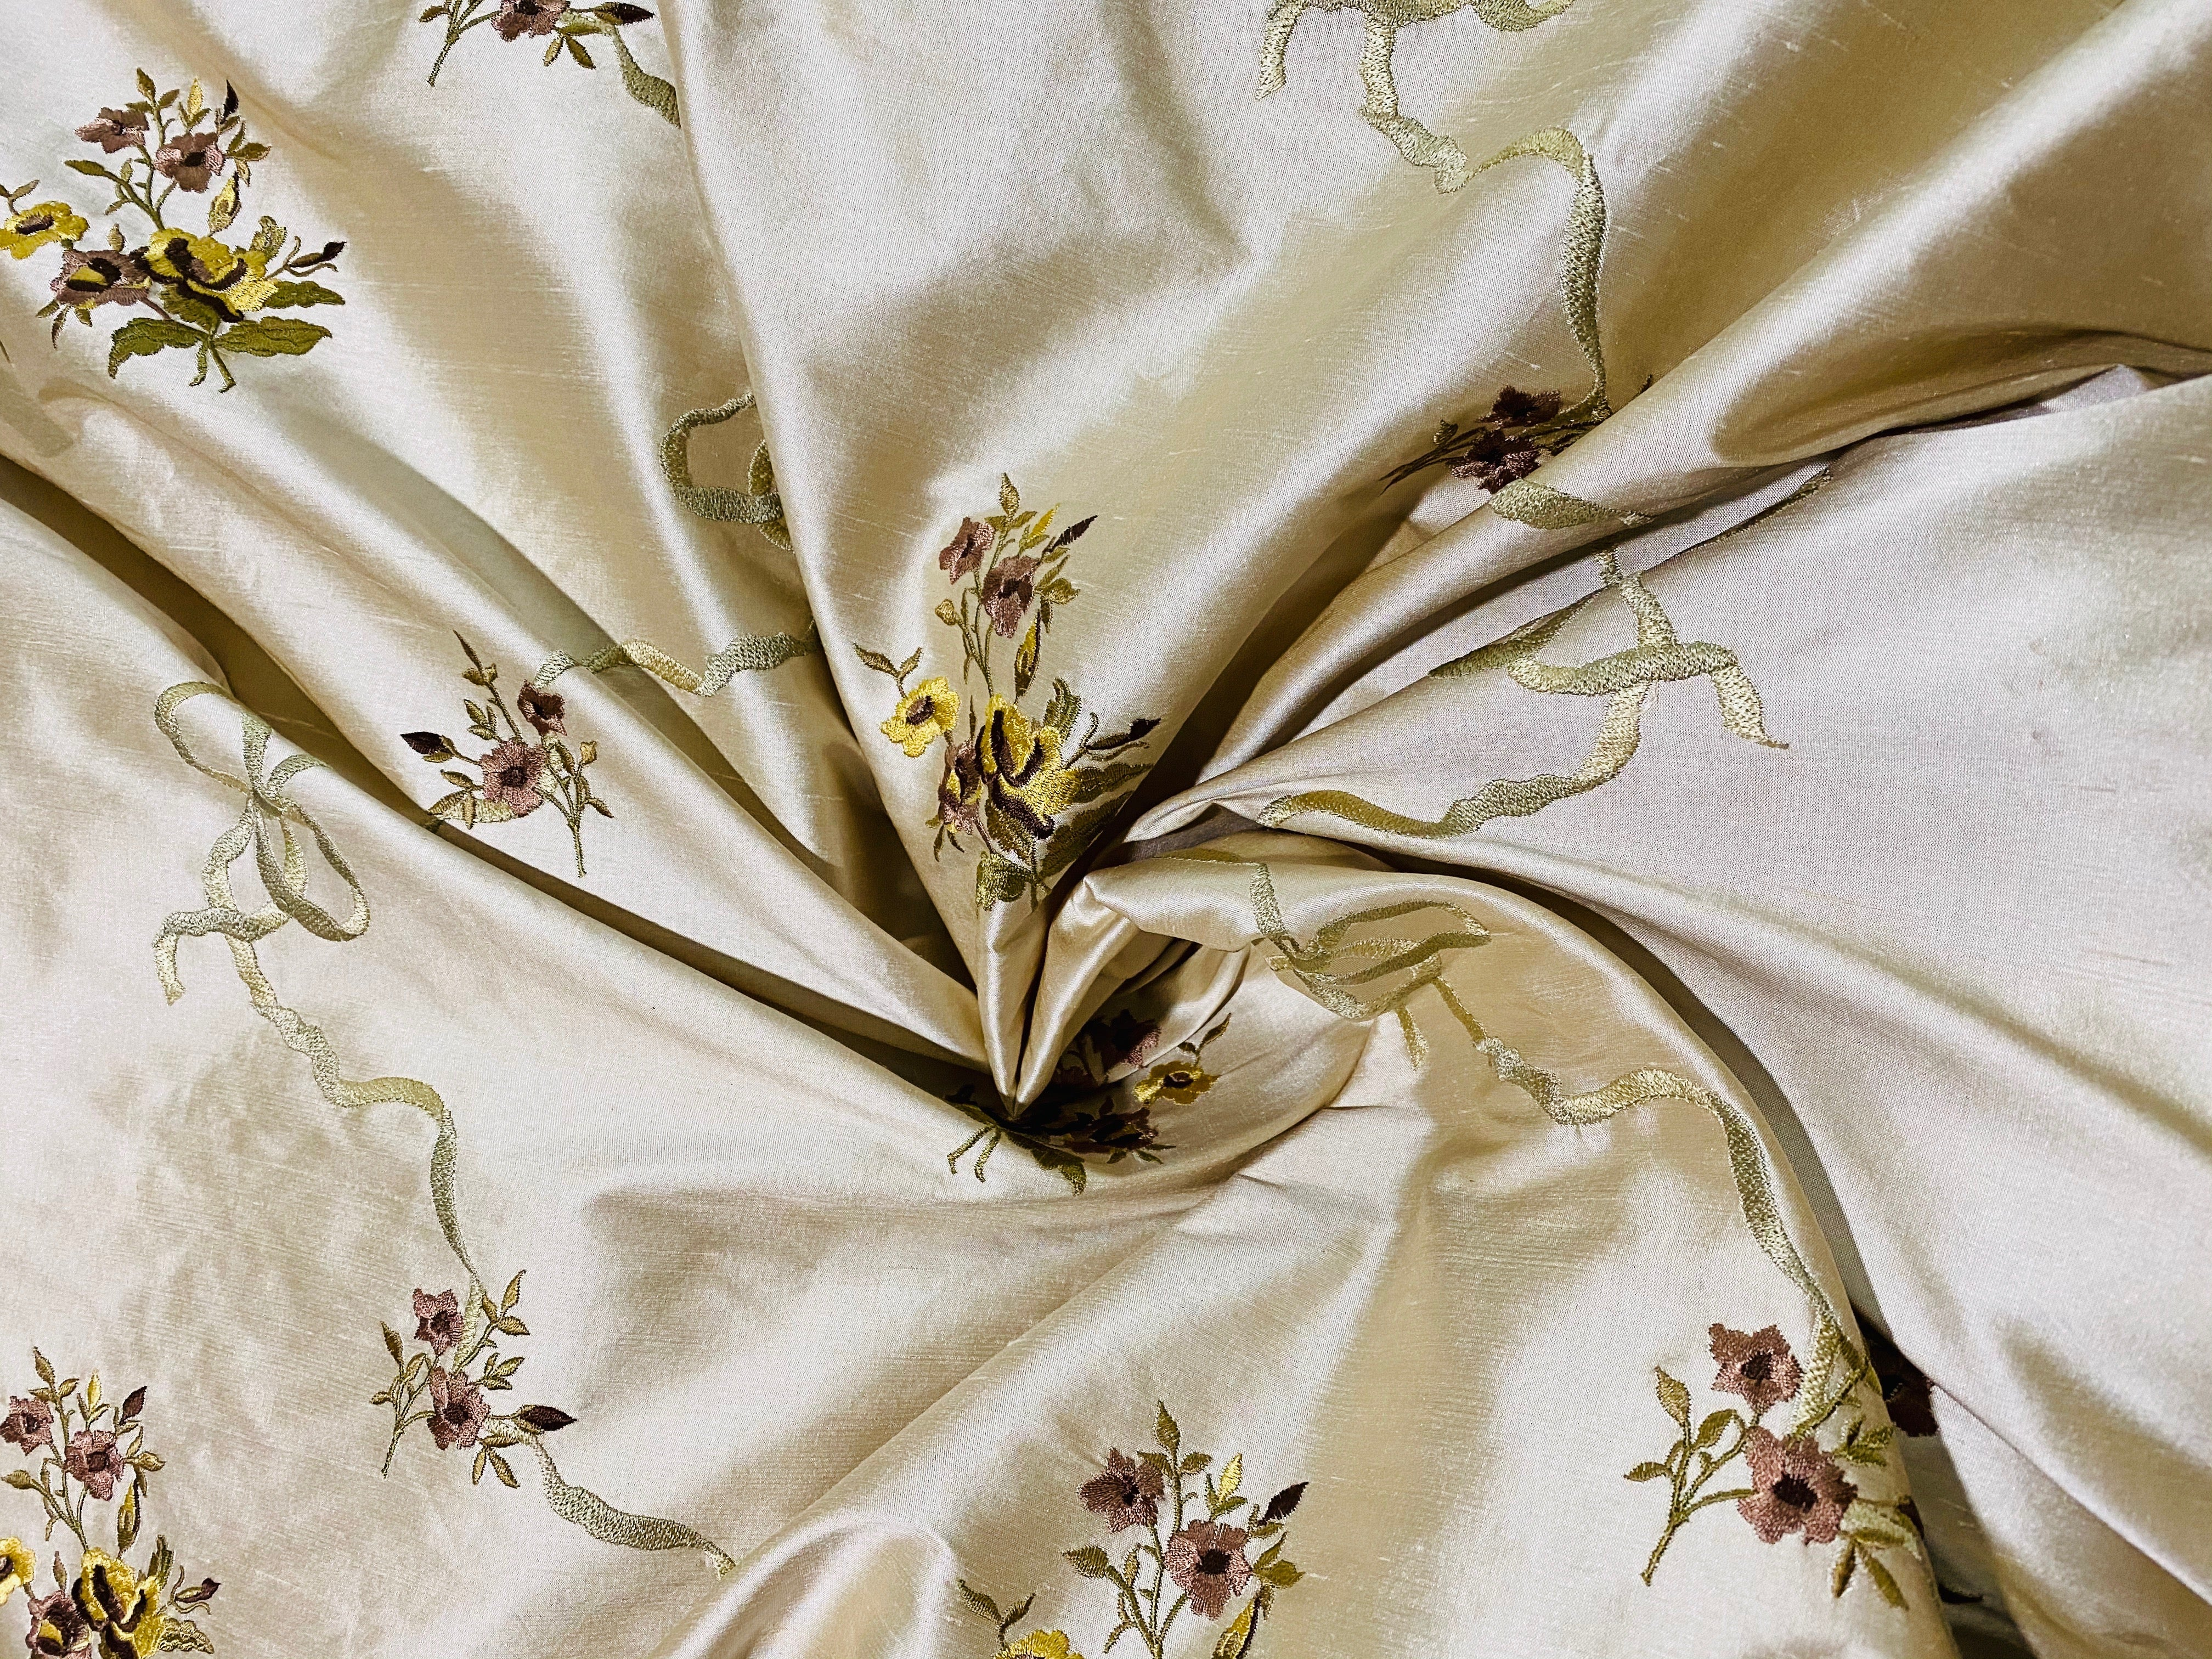 NEW Designer 100% Silk Dupioni Fabric - Eggshell Floral Bouquet with Bows